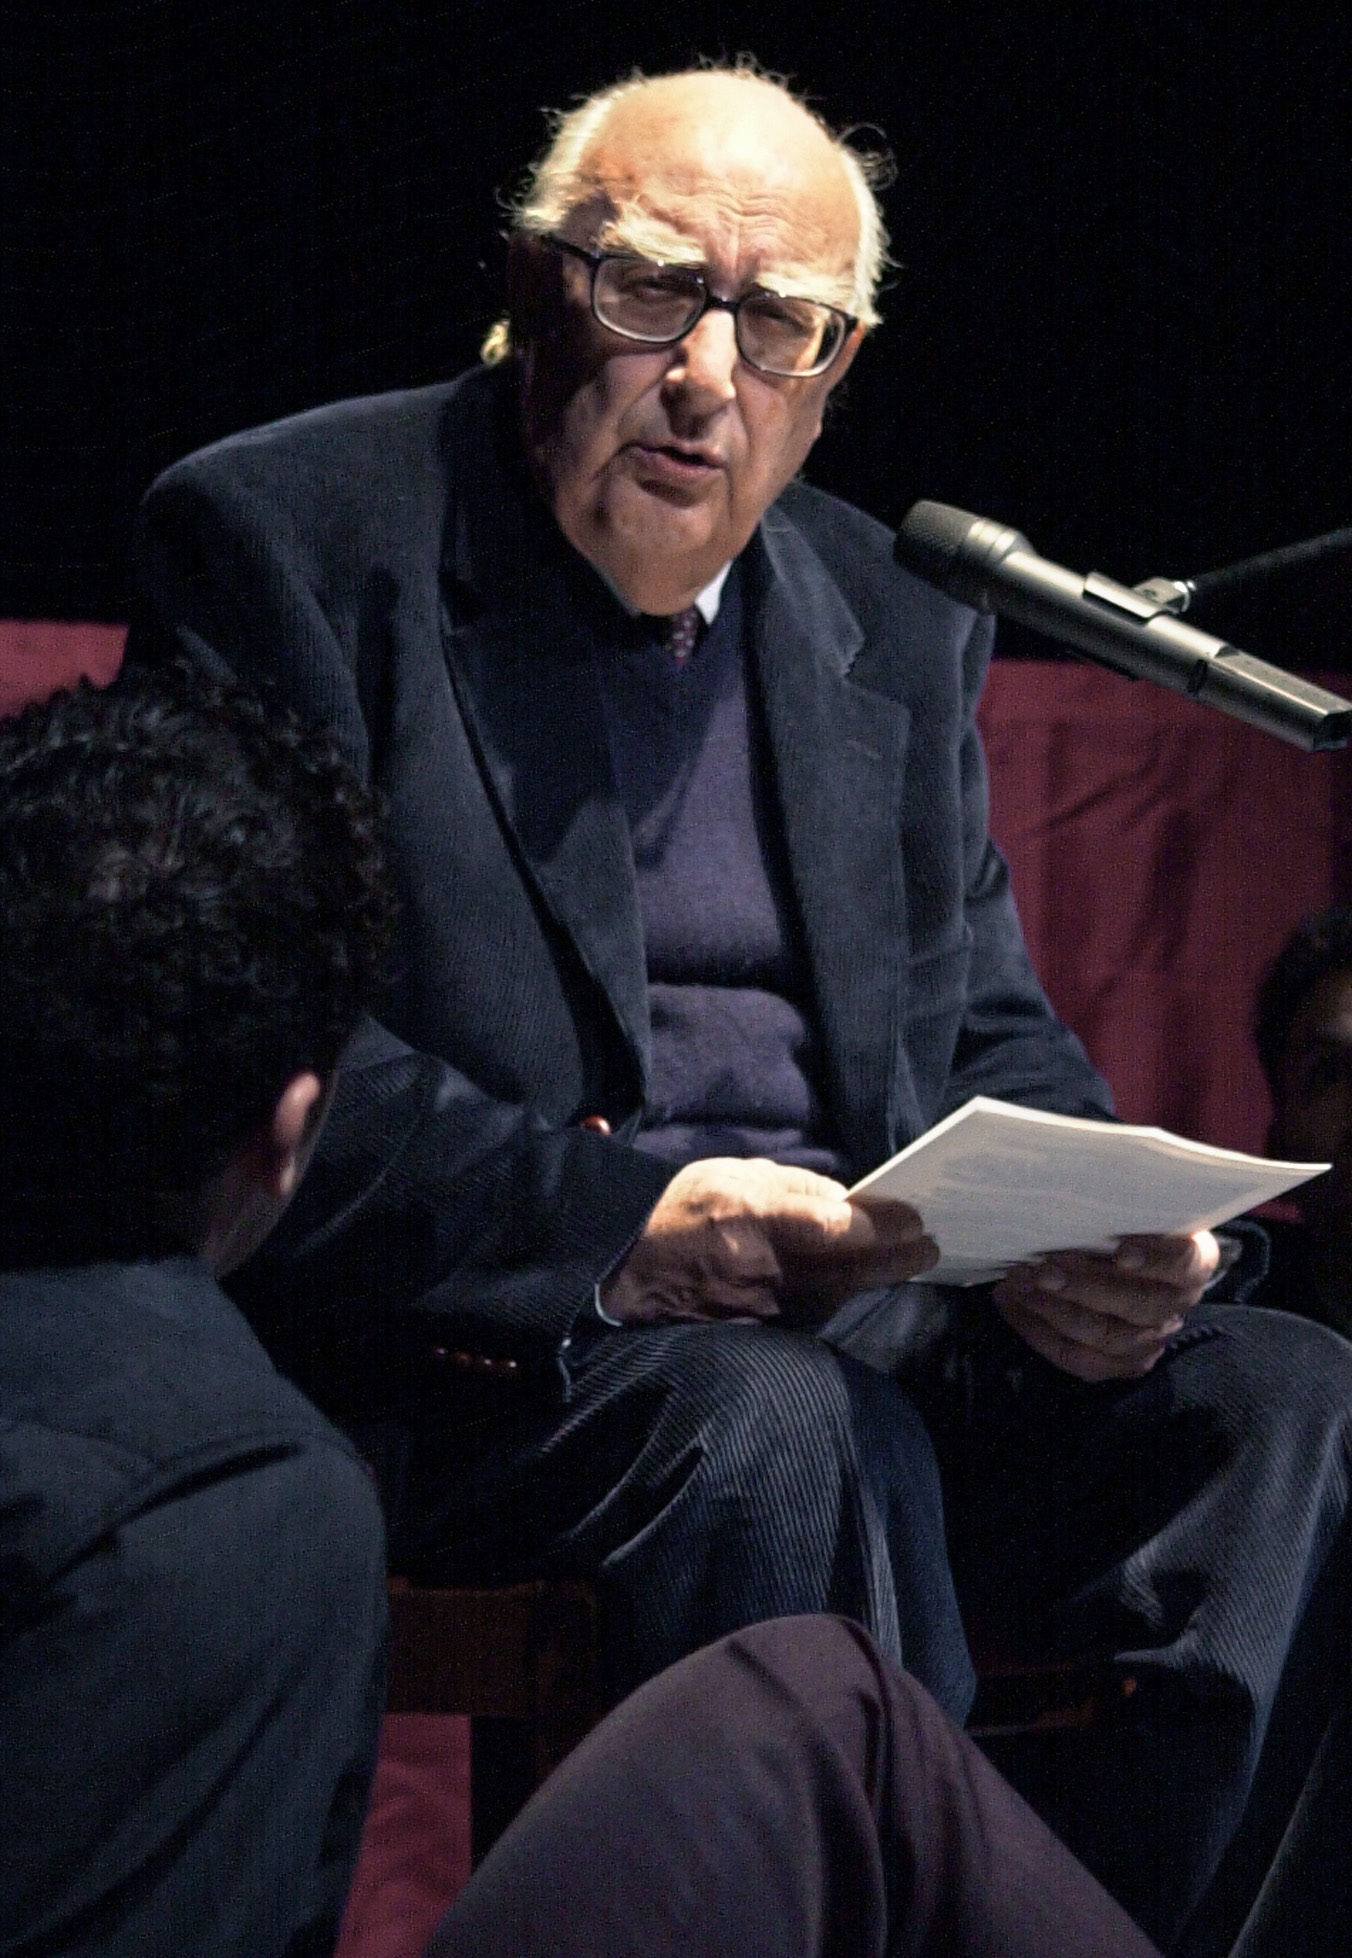 FILE - In this March 5, 2001 file photo, Italian author Andrea Camilleri reads a Luigi Priandello novel at Rome's Piccolo Eliseo theater.{ } (AP Photo/Gregorio Borgia, File)